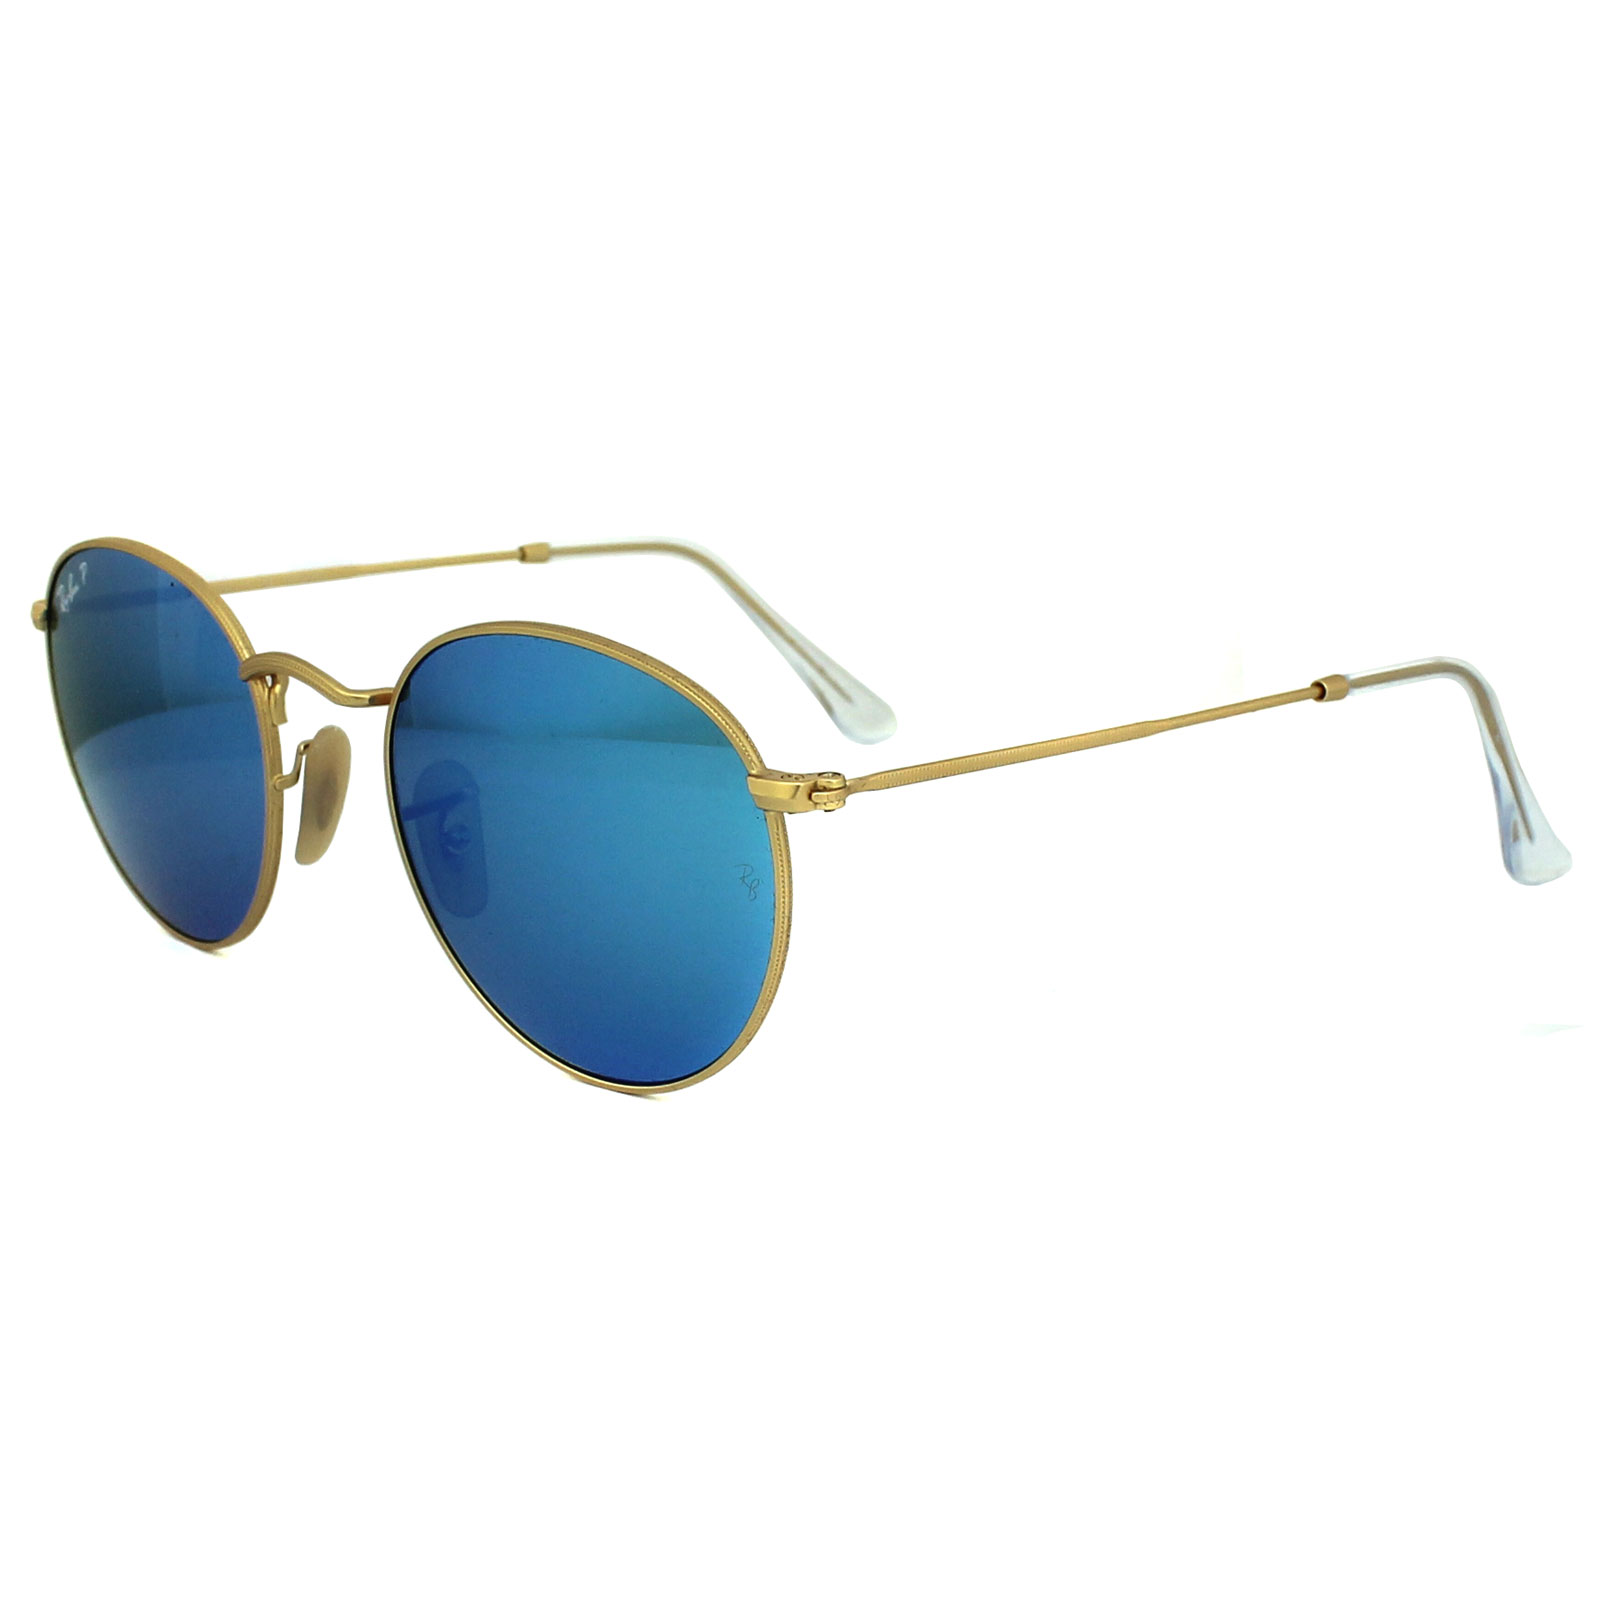 Ray-Ban Sunglasses Round Metal 3447 112/4L Gold Blue Polarized Flash Mirror